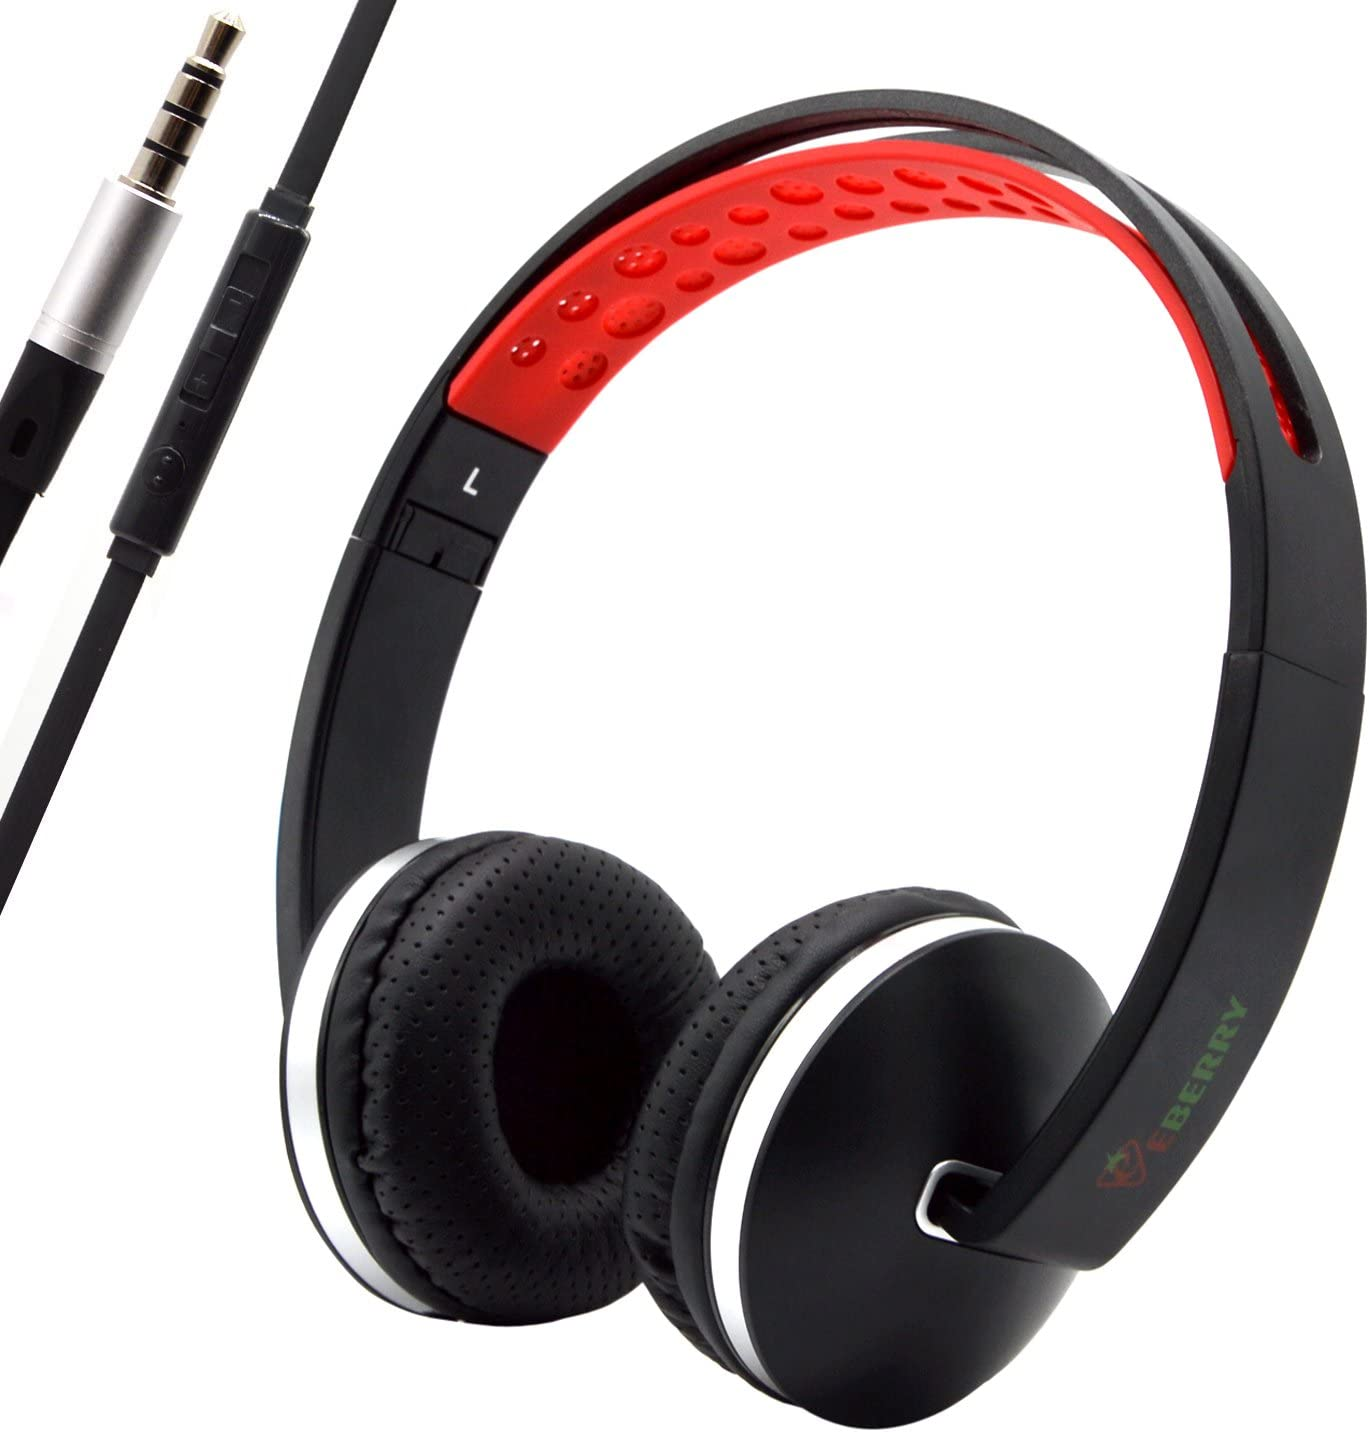 Bluelark Portable Foldable Over-Ear Adjustable Headphone - Powerful Bass Headset with Microphone & Inline Volume Control Perfect Workout Headphones for iPhone iPod Android Laptop Mp3/4